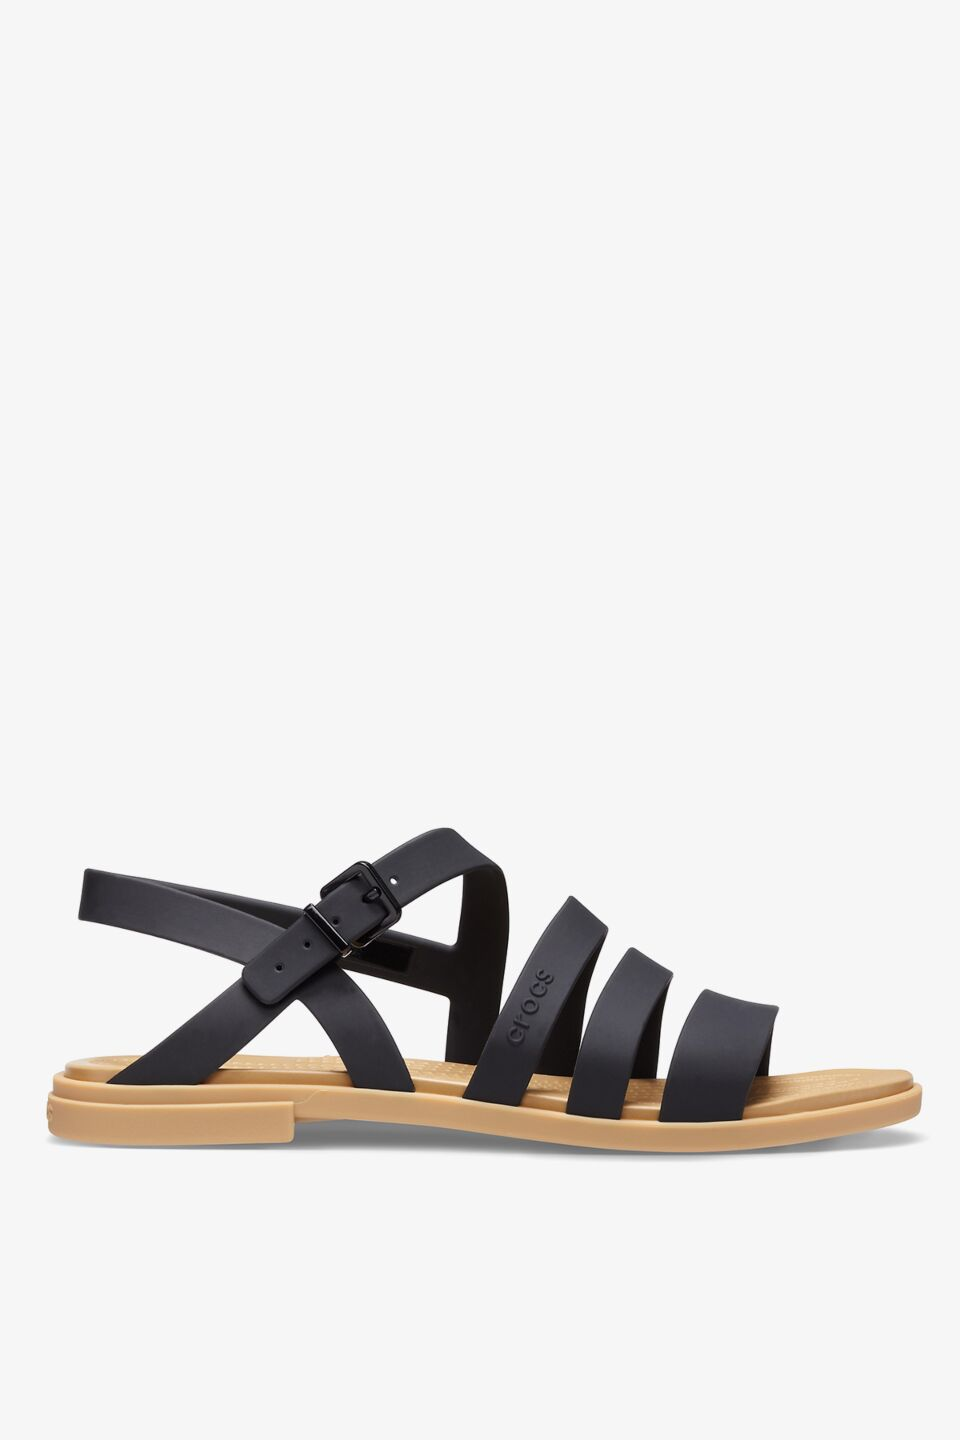 TULUM SANDAL W 206107 BLACK/TAN